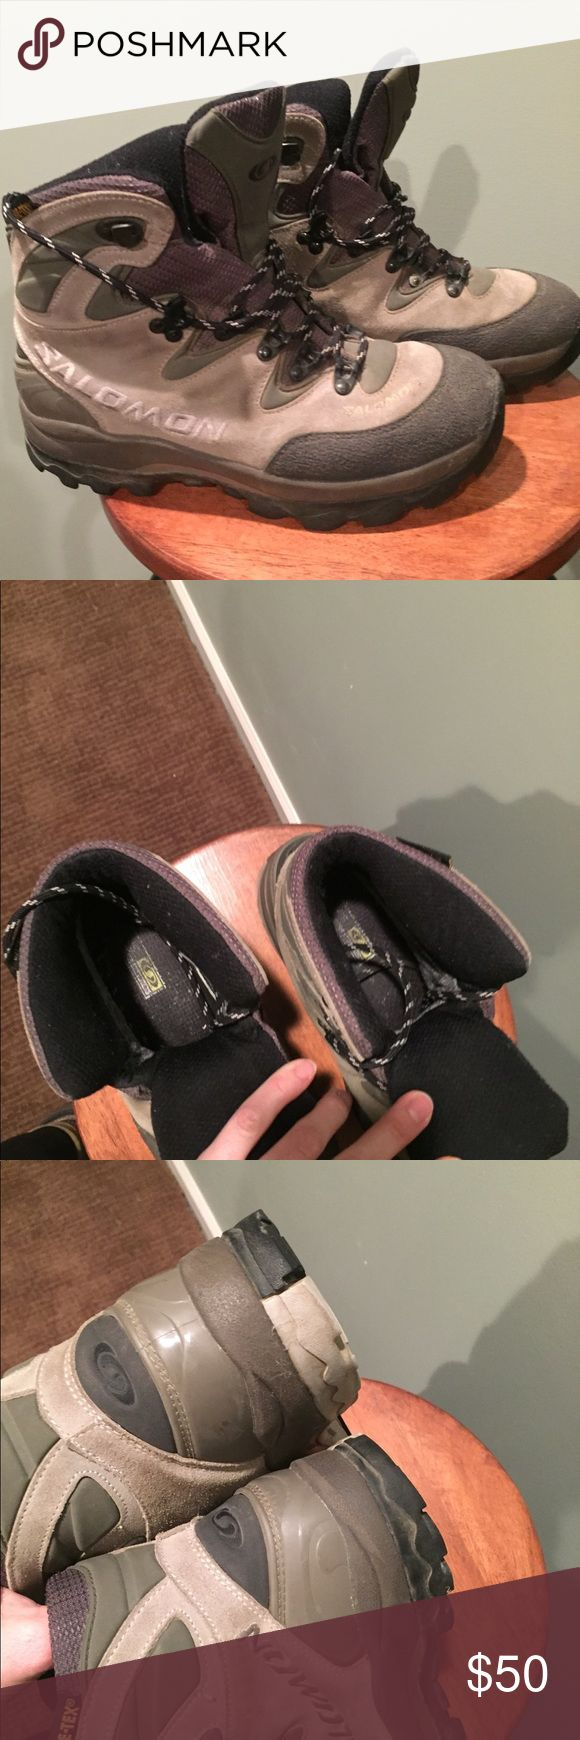 Salomon hiking boots women's 9.5 EUC Barely worn, extra sturdy and strong ankle support. Serious boot for serious hiking and camping. I don't recall the style name. EUC. True to size. I wear 9.5 almost all the time and these fit well with Smartwools and the like. Salomon Shoes Winter & Rain Boots